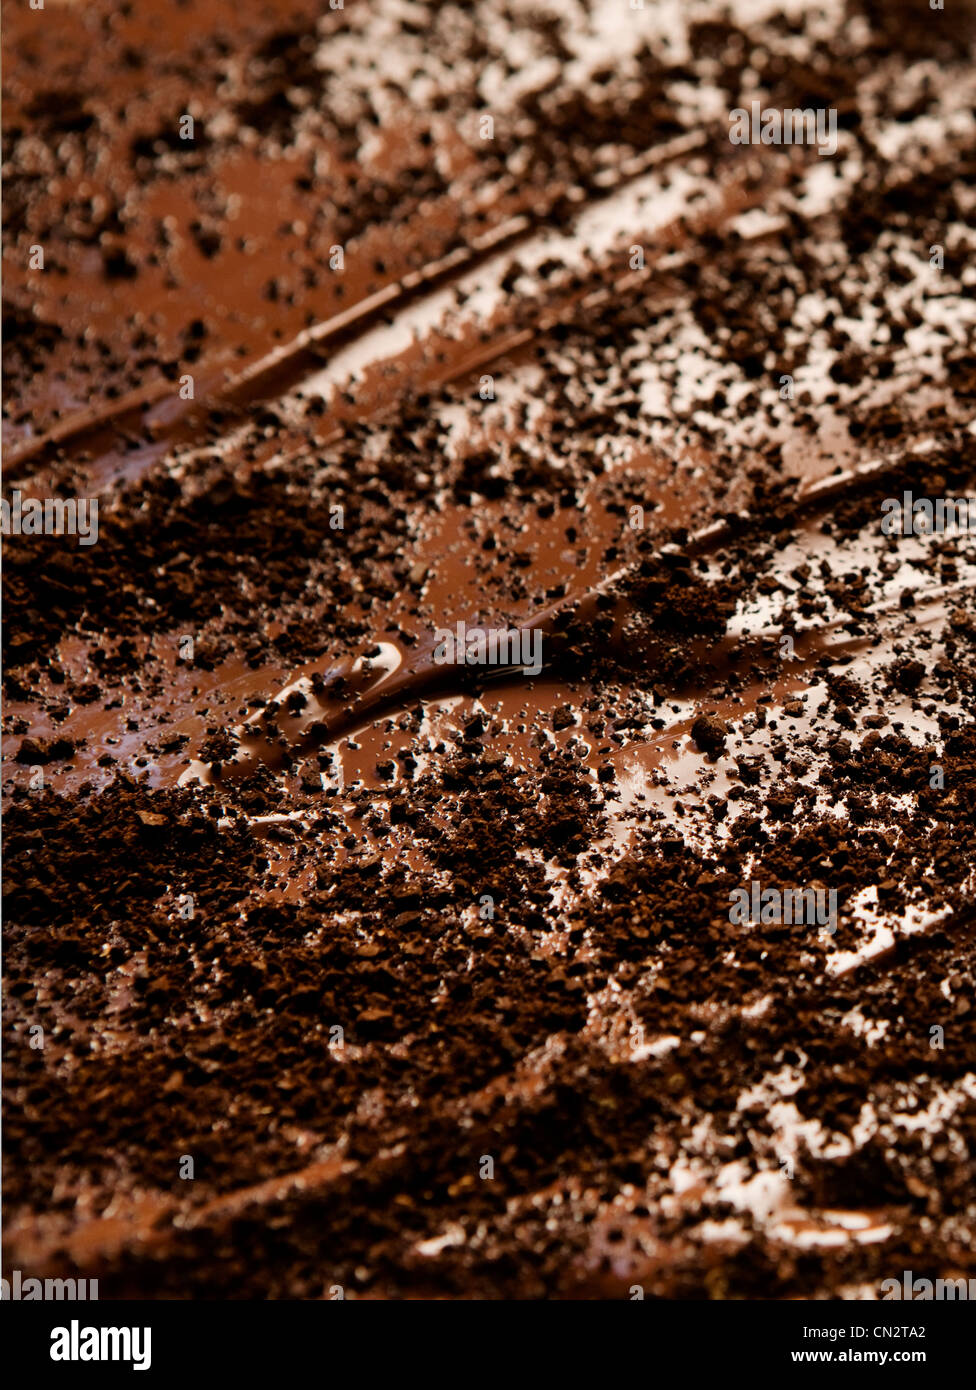 Glaçage au chocolat, full frame Photo Stock